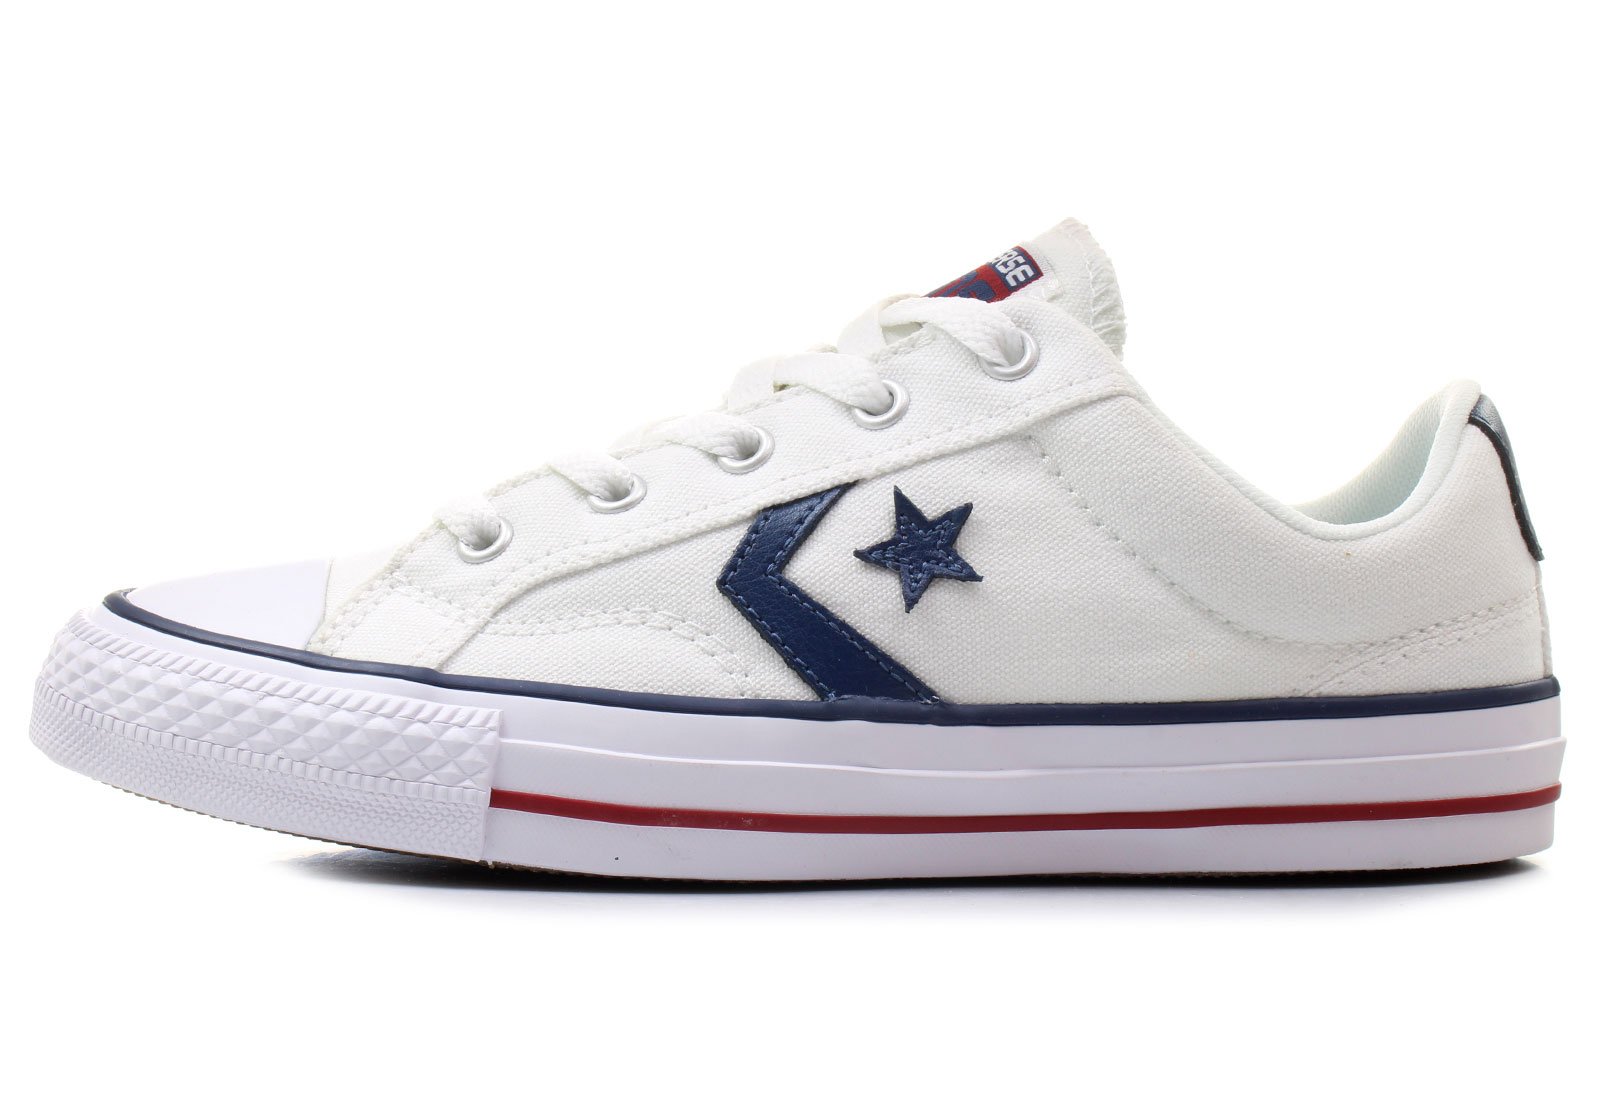 Converse Sneakers Star Player Ev 144151c Online Shop